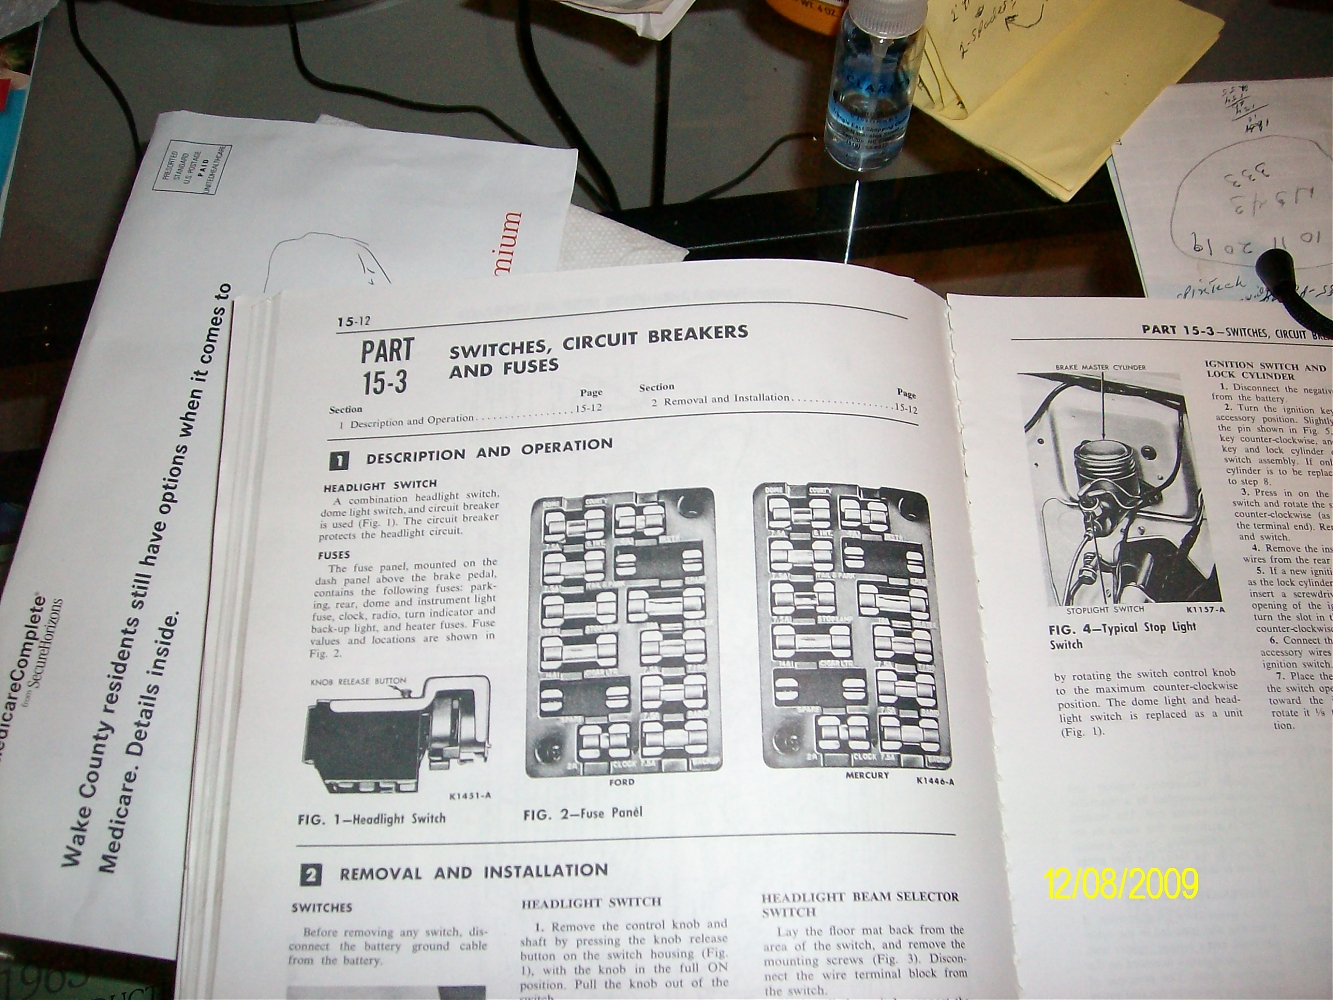 ford 500 fuse box diagram ZUoyCqG ford 500 fuse box diagram image details 1963 ford thunderbird fuse box location at fashall.co